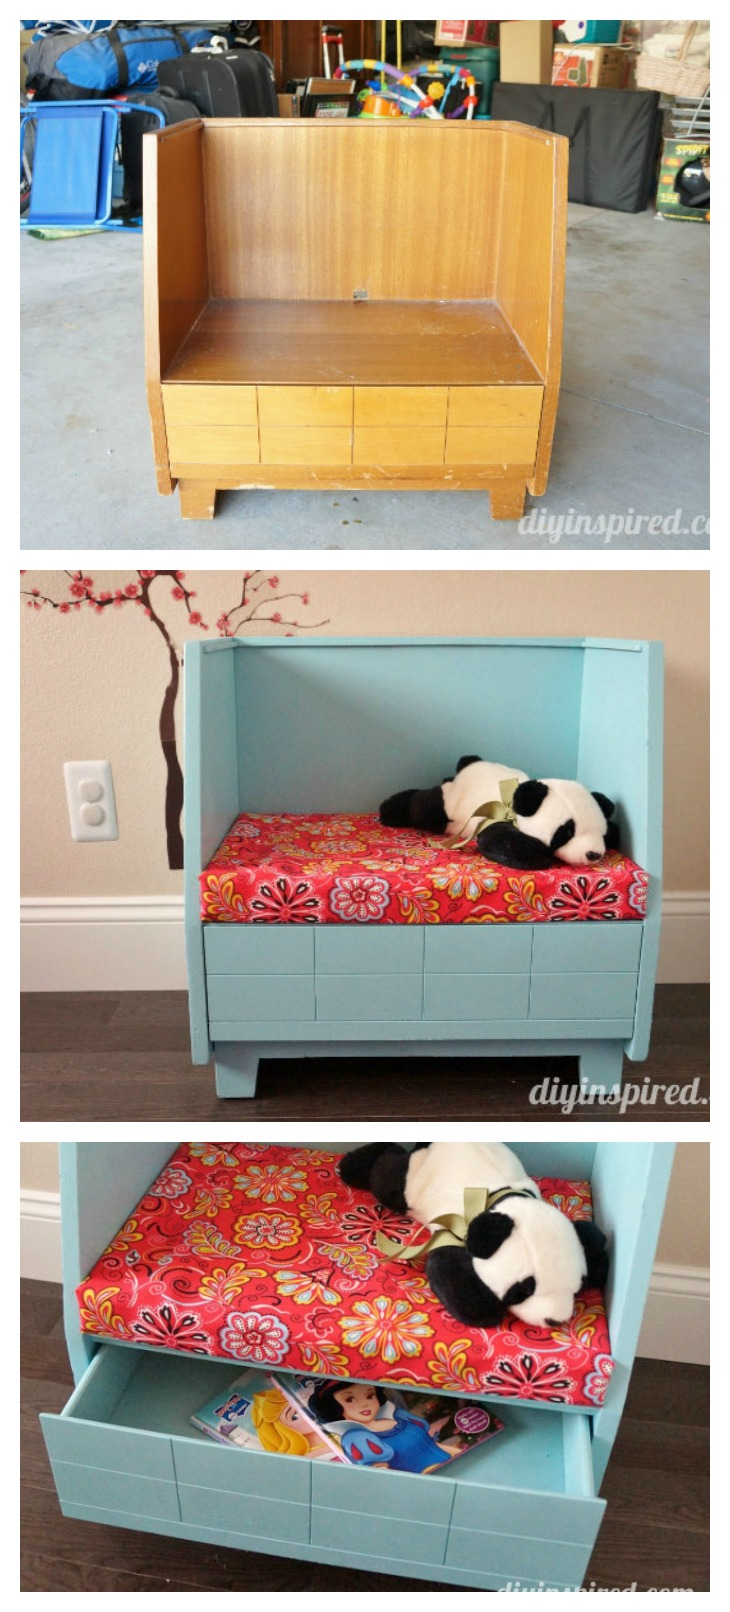 Turn Thrift Store Old Bench into a Kids Reading Nook, Bench for Reading